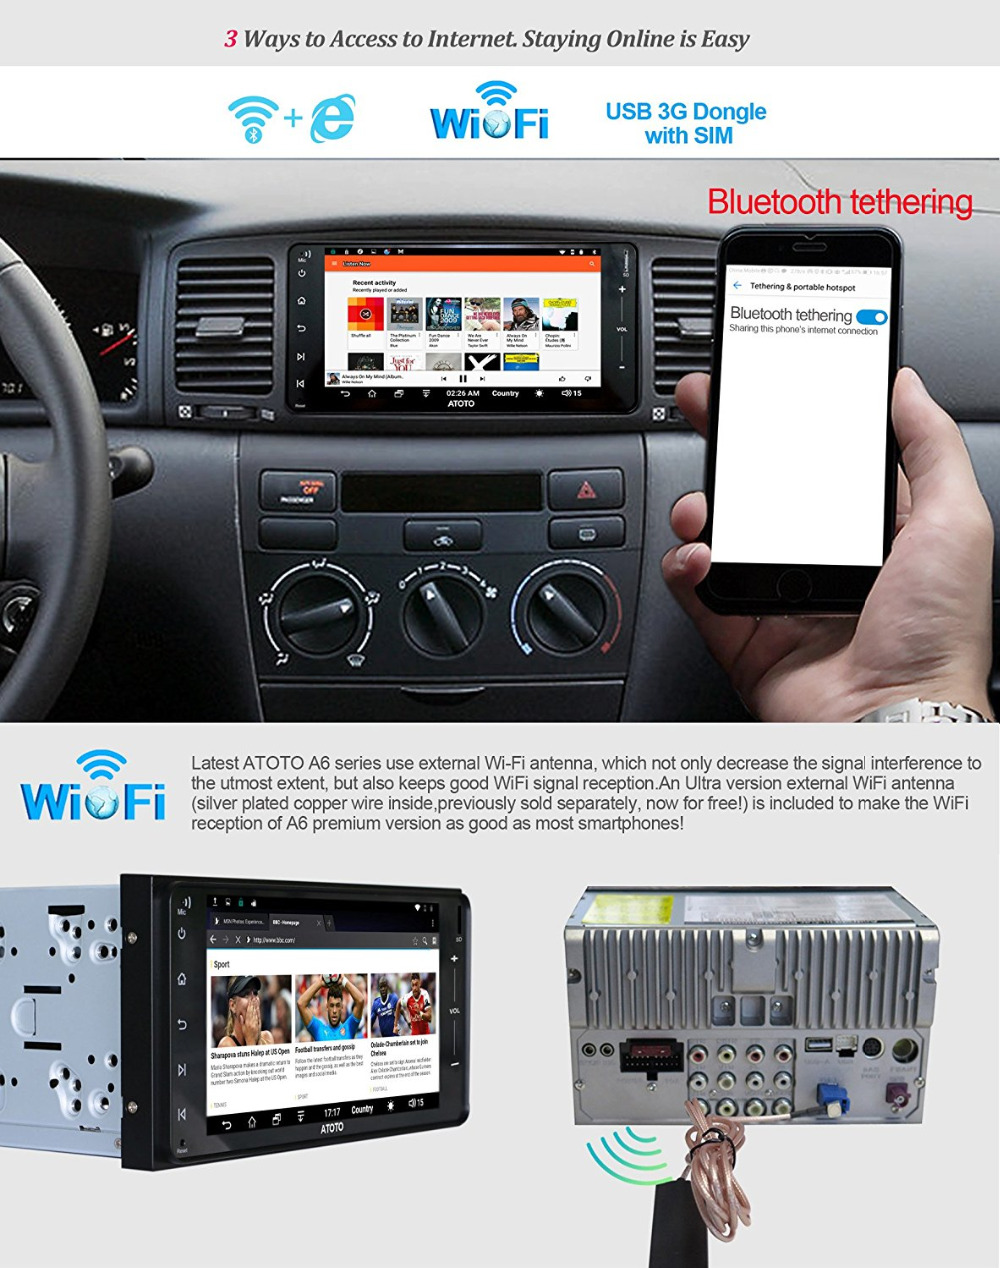 US $209 0  ATOTO A6 Double Din Android Car GPS Stereo/for Toyota & Subaru/  Dual Bluetooth/A6YTY721P 2G+32G/Quick Charge/Indash Radio/WiFi-in Vehicle